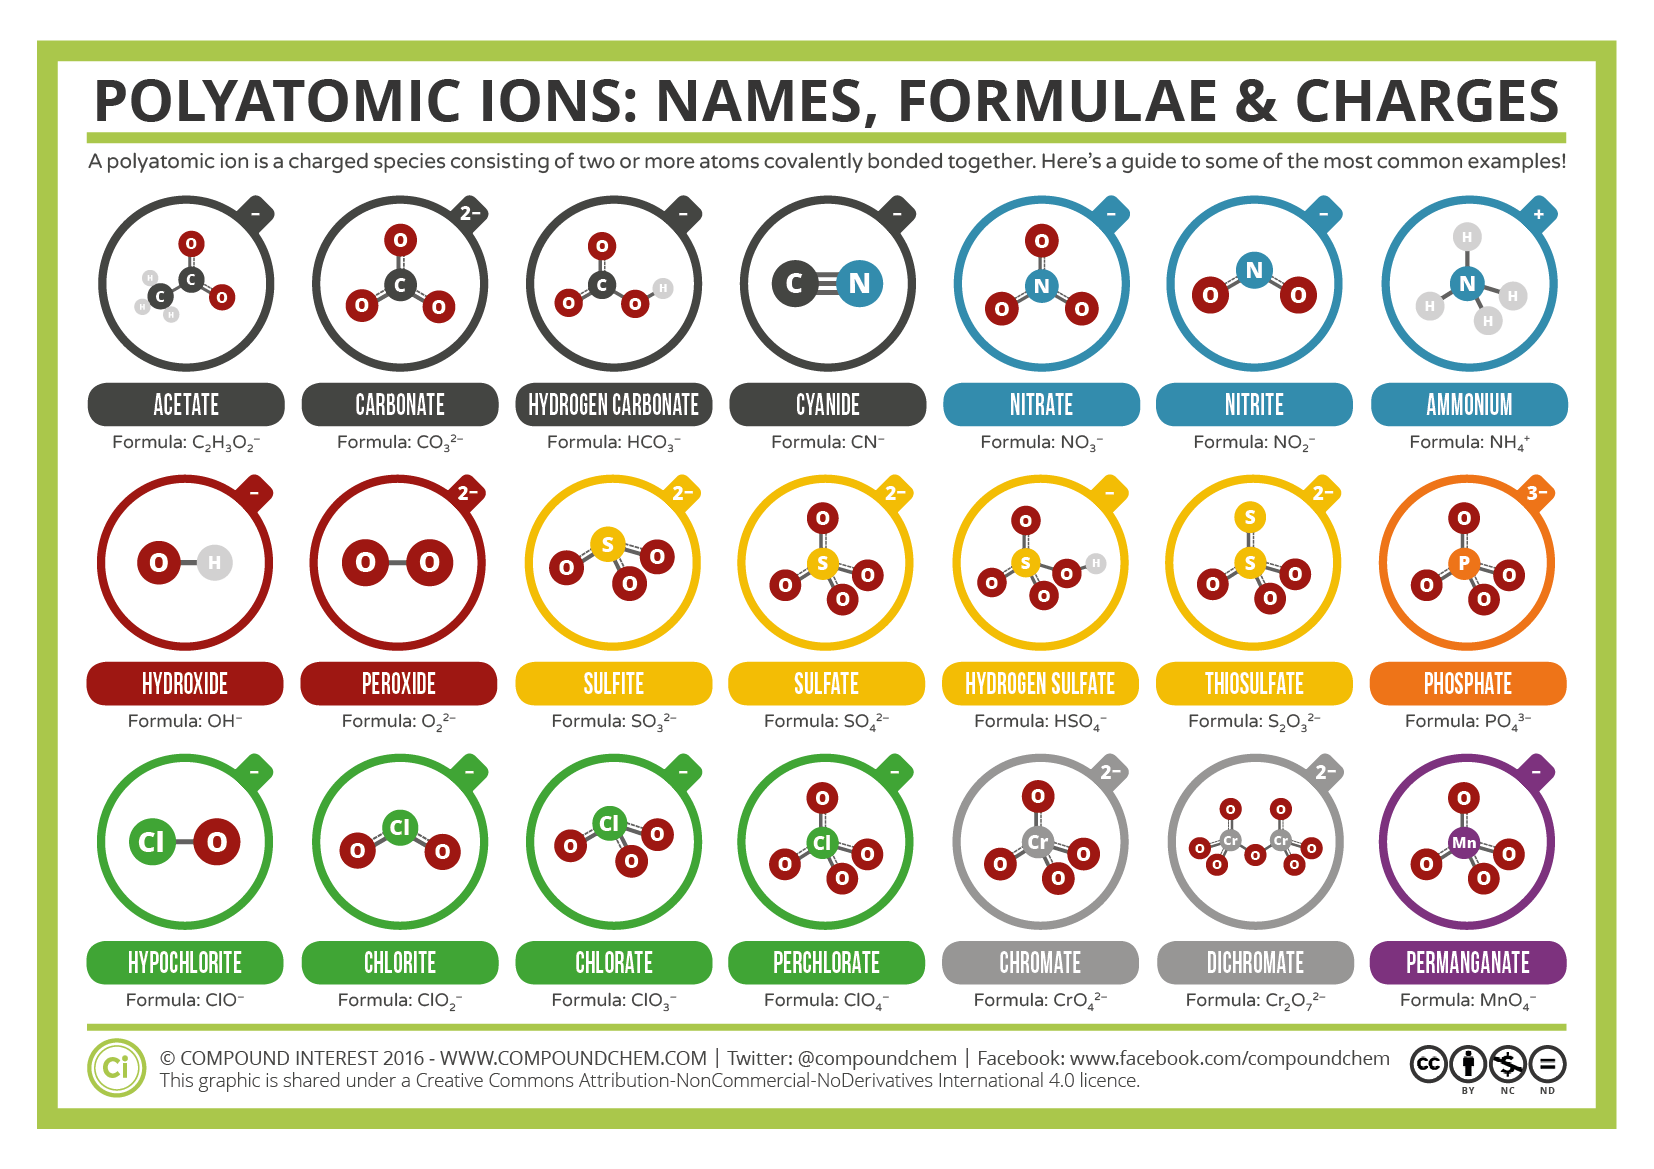 Common Polyatomic Ions Names Formulae And Charges